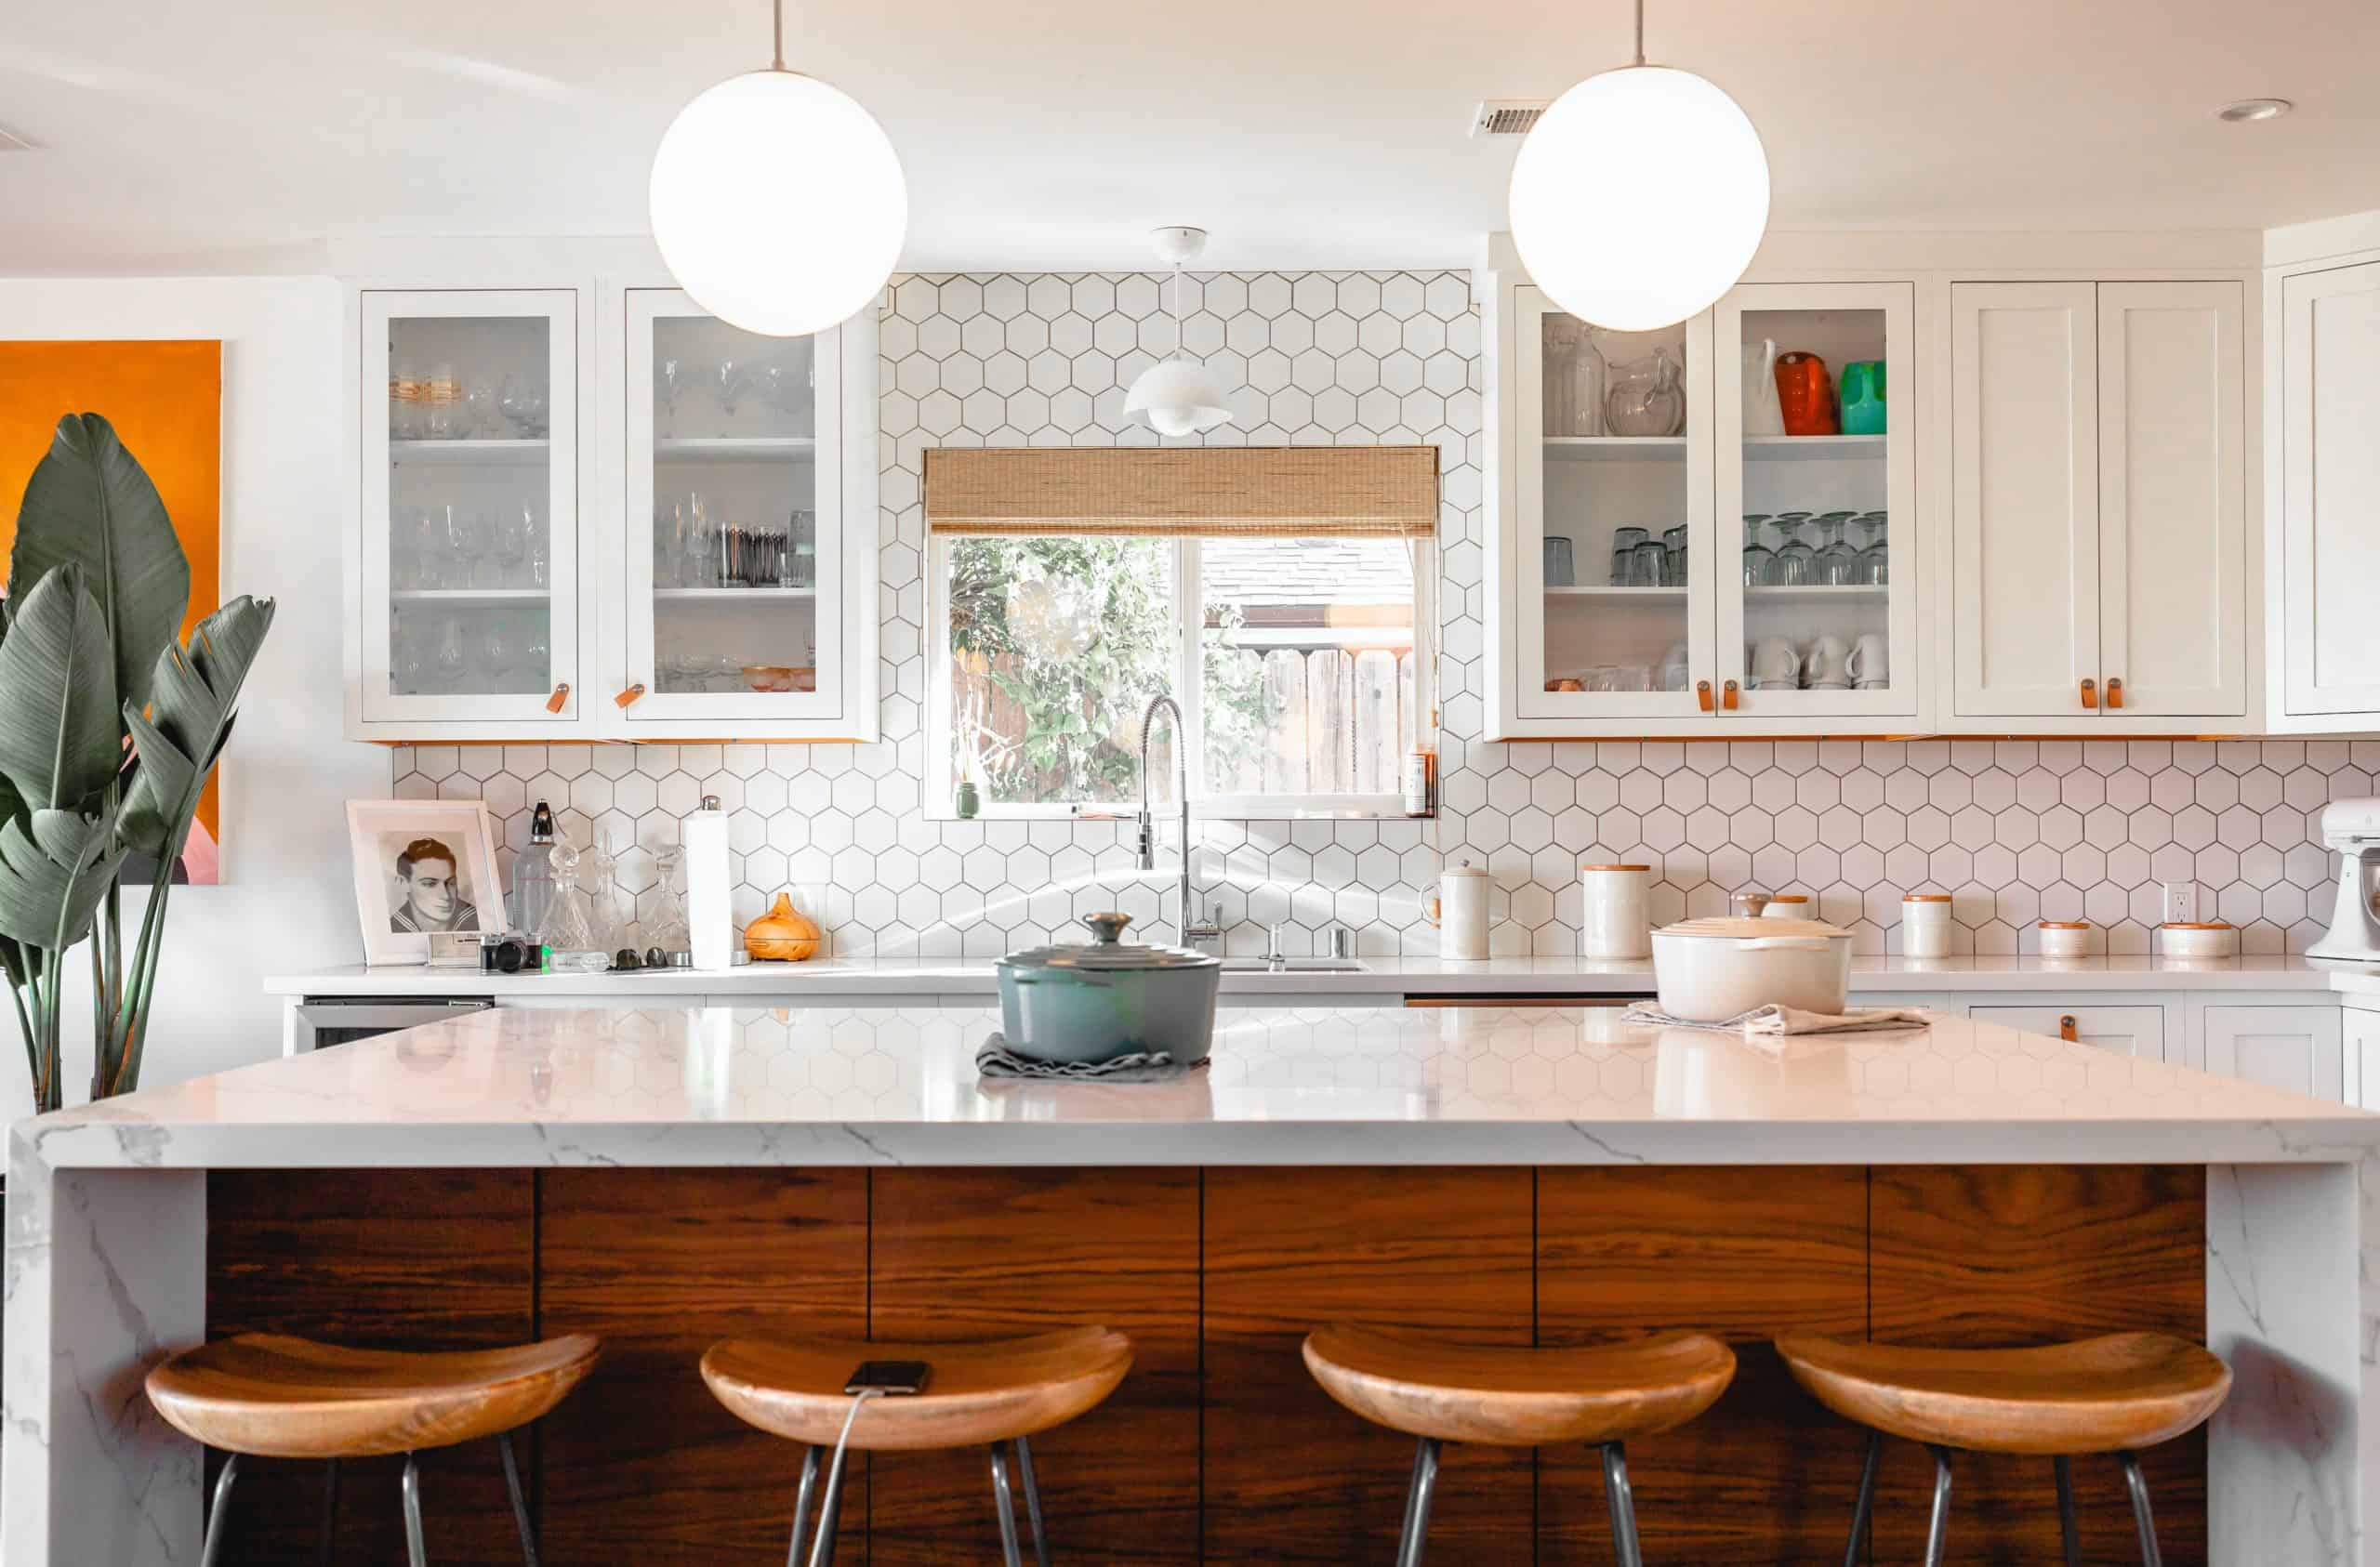 Is Your Knowledge Enough About White Kitchens?